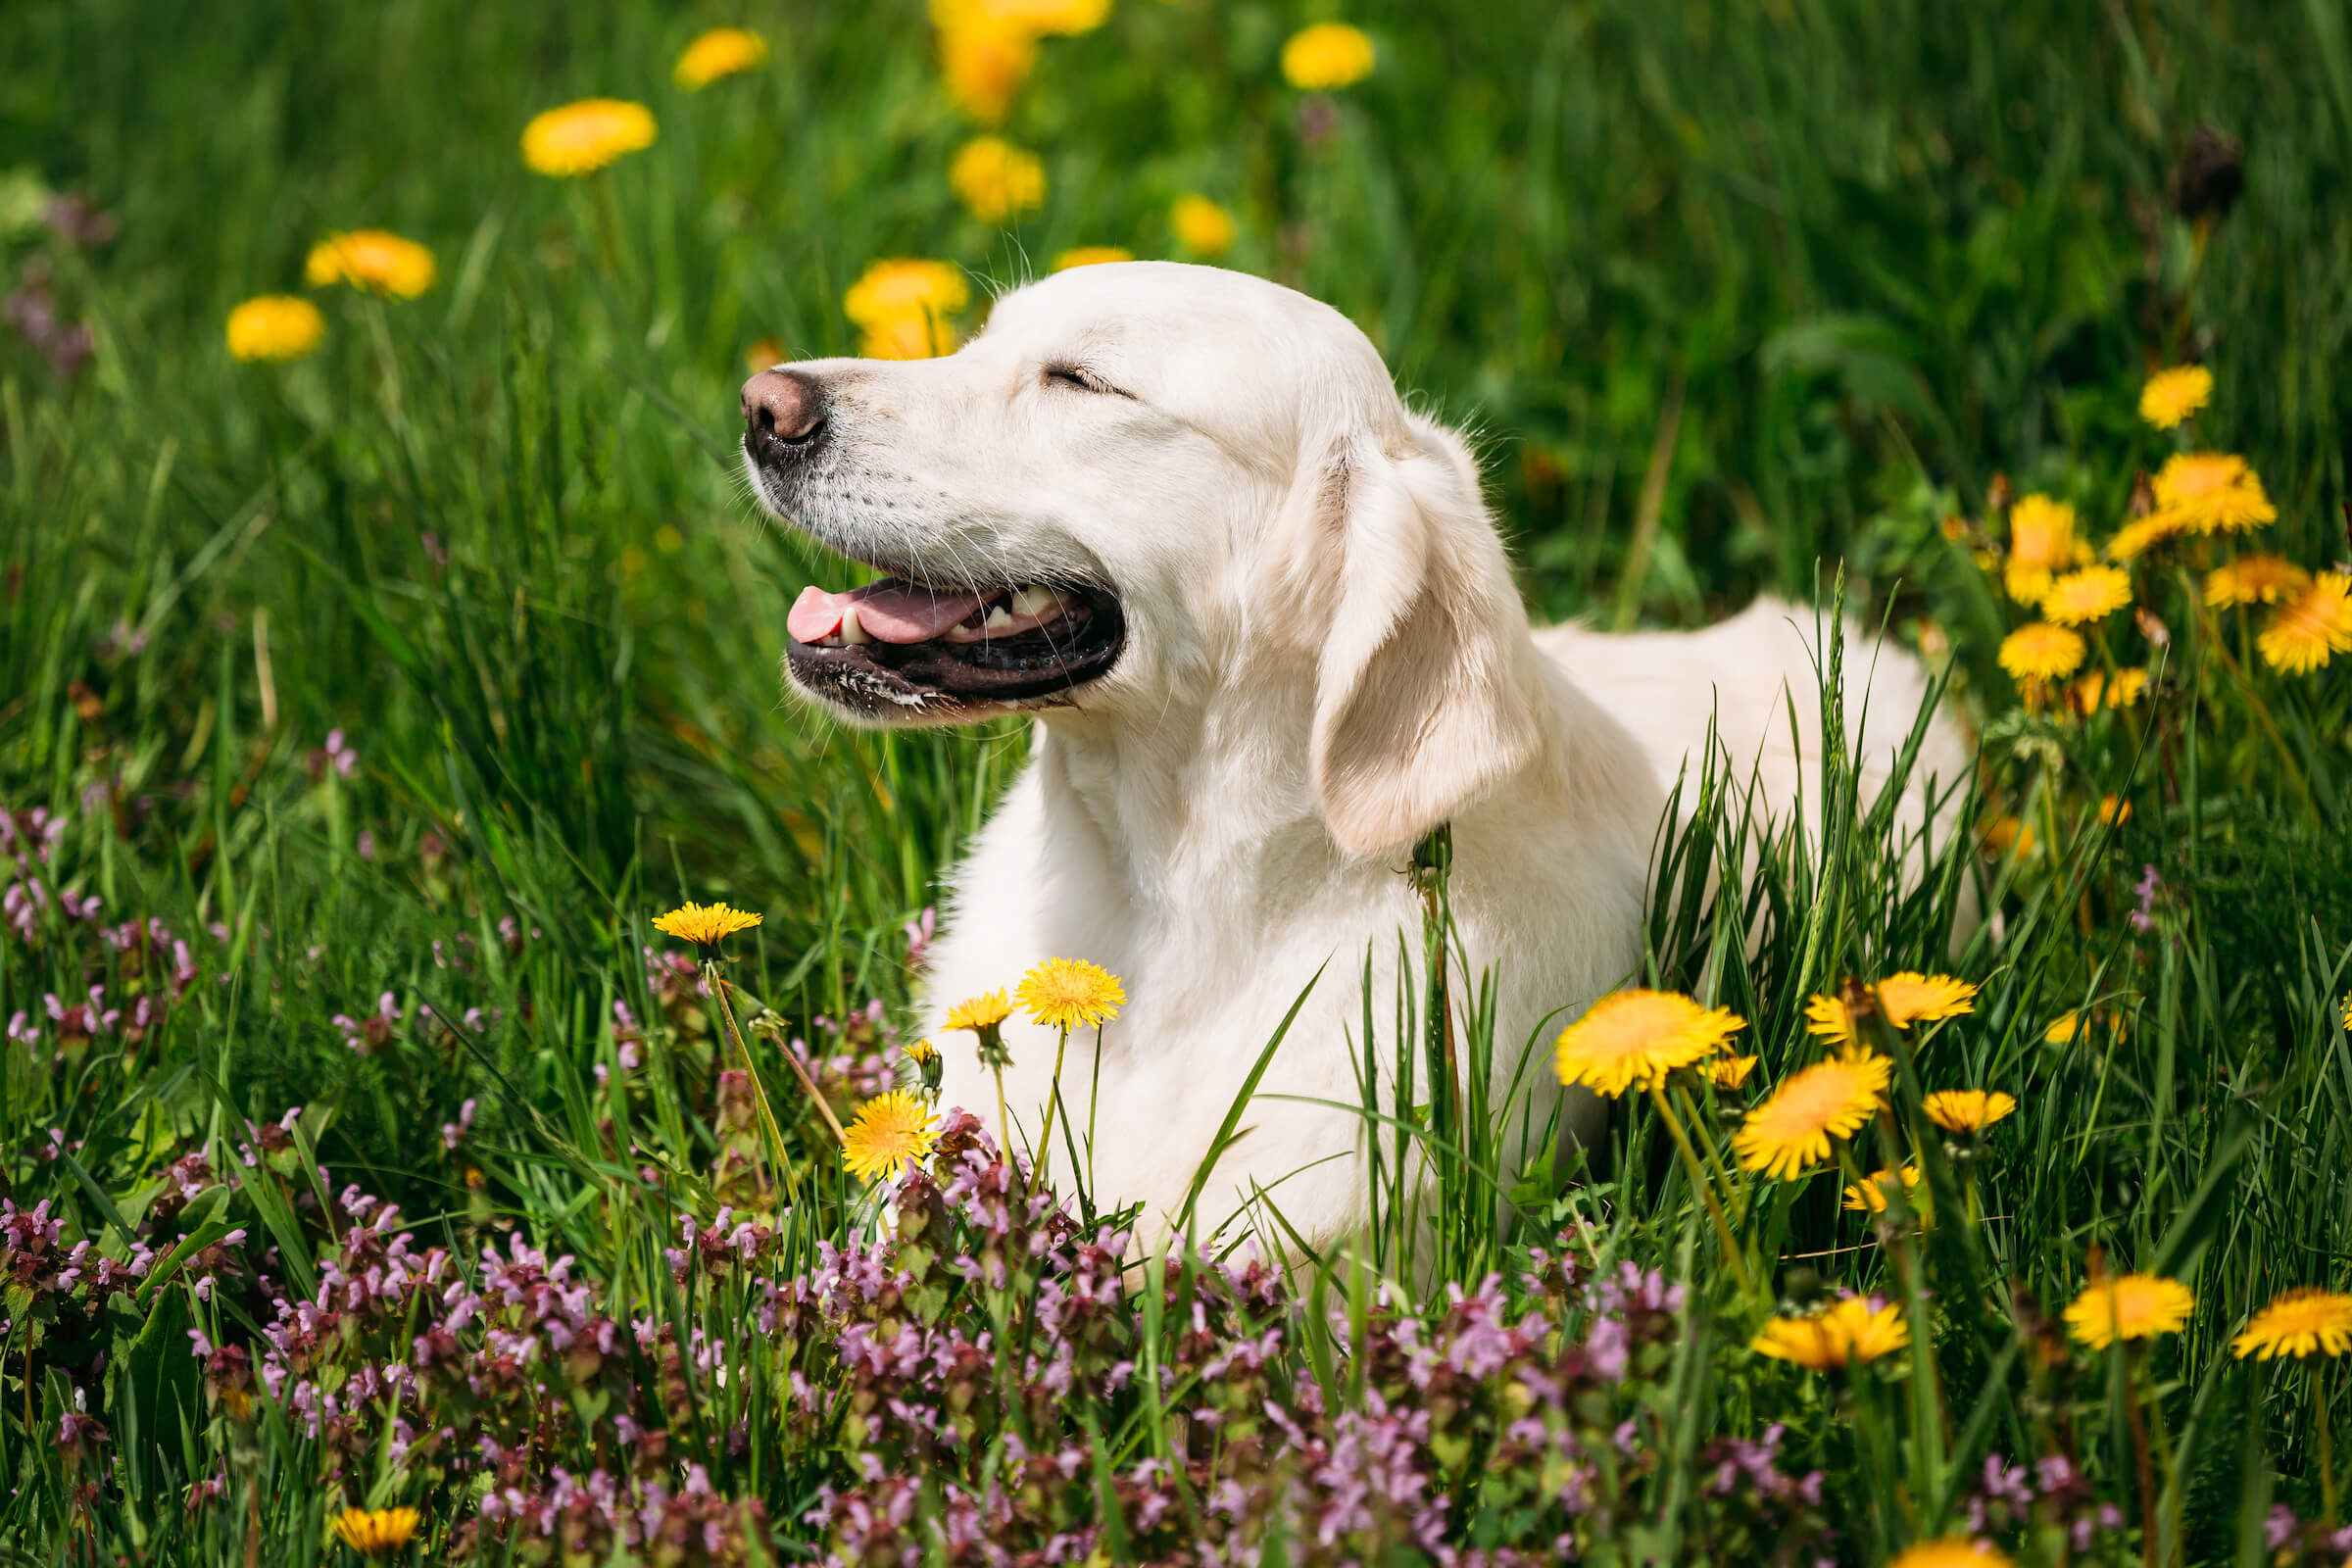 White Obedient Funny Young Happy Labrador Retriever Sitting In Grass And In Yellow Dandelions Outdoor. Spring Season.